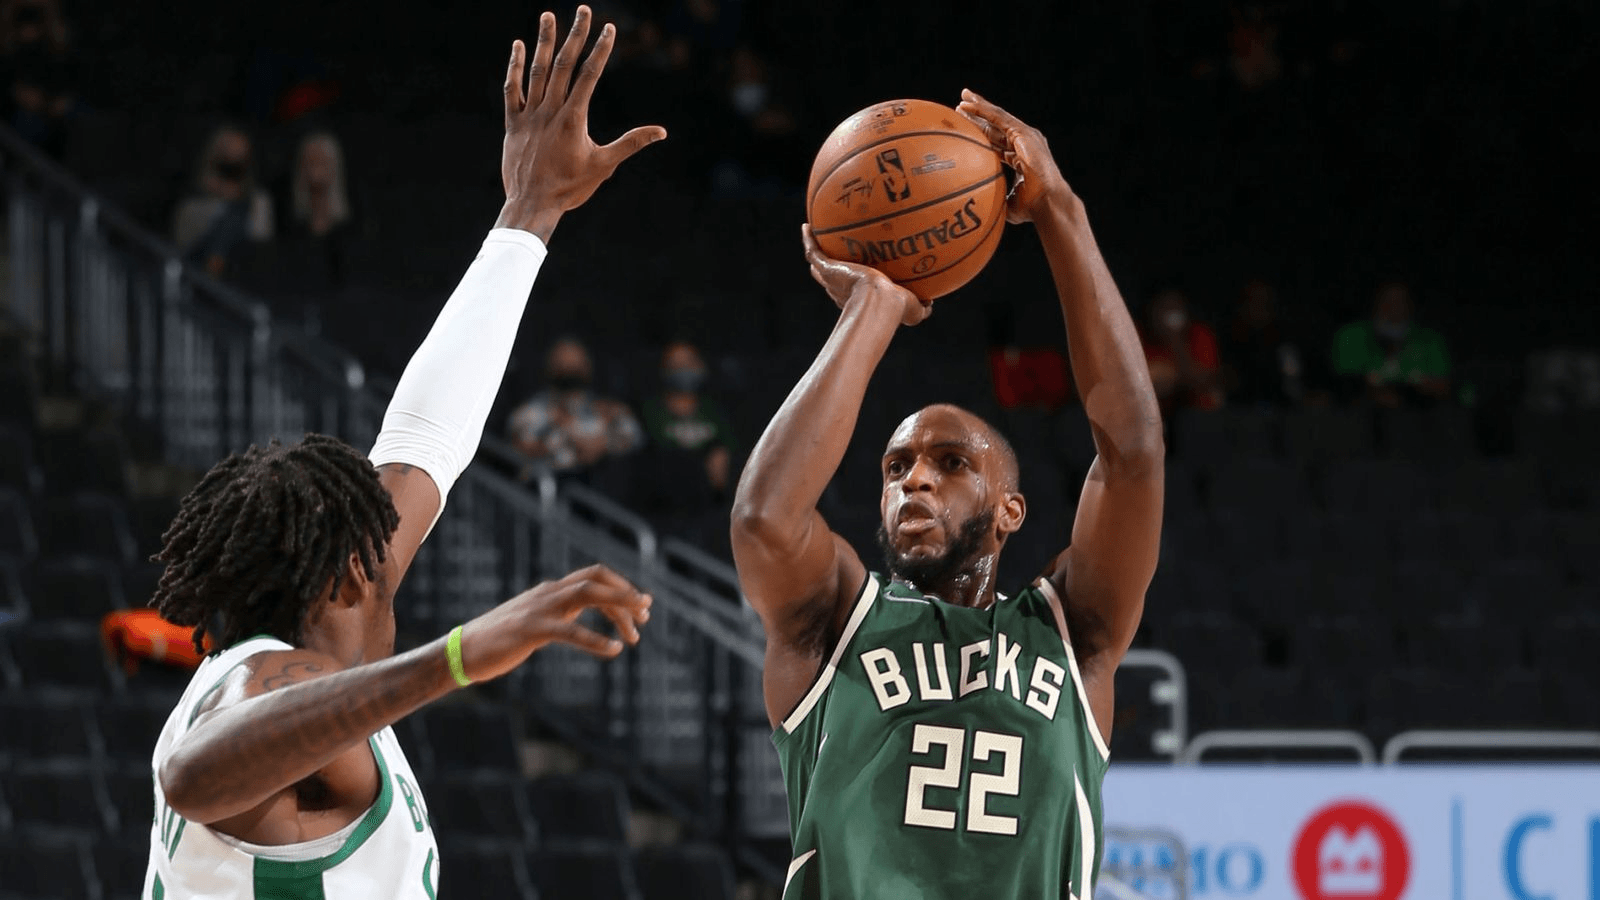 Bucks' Solid Home Back-to-Back Record Helps Tip Scales Over Visiting Knicks